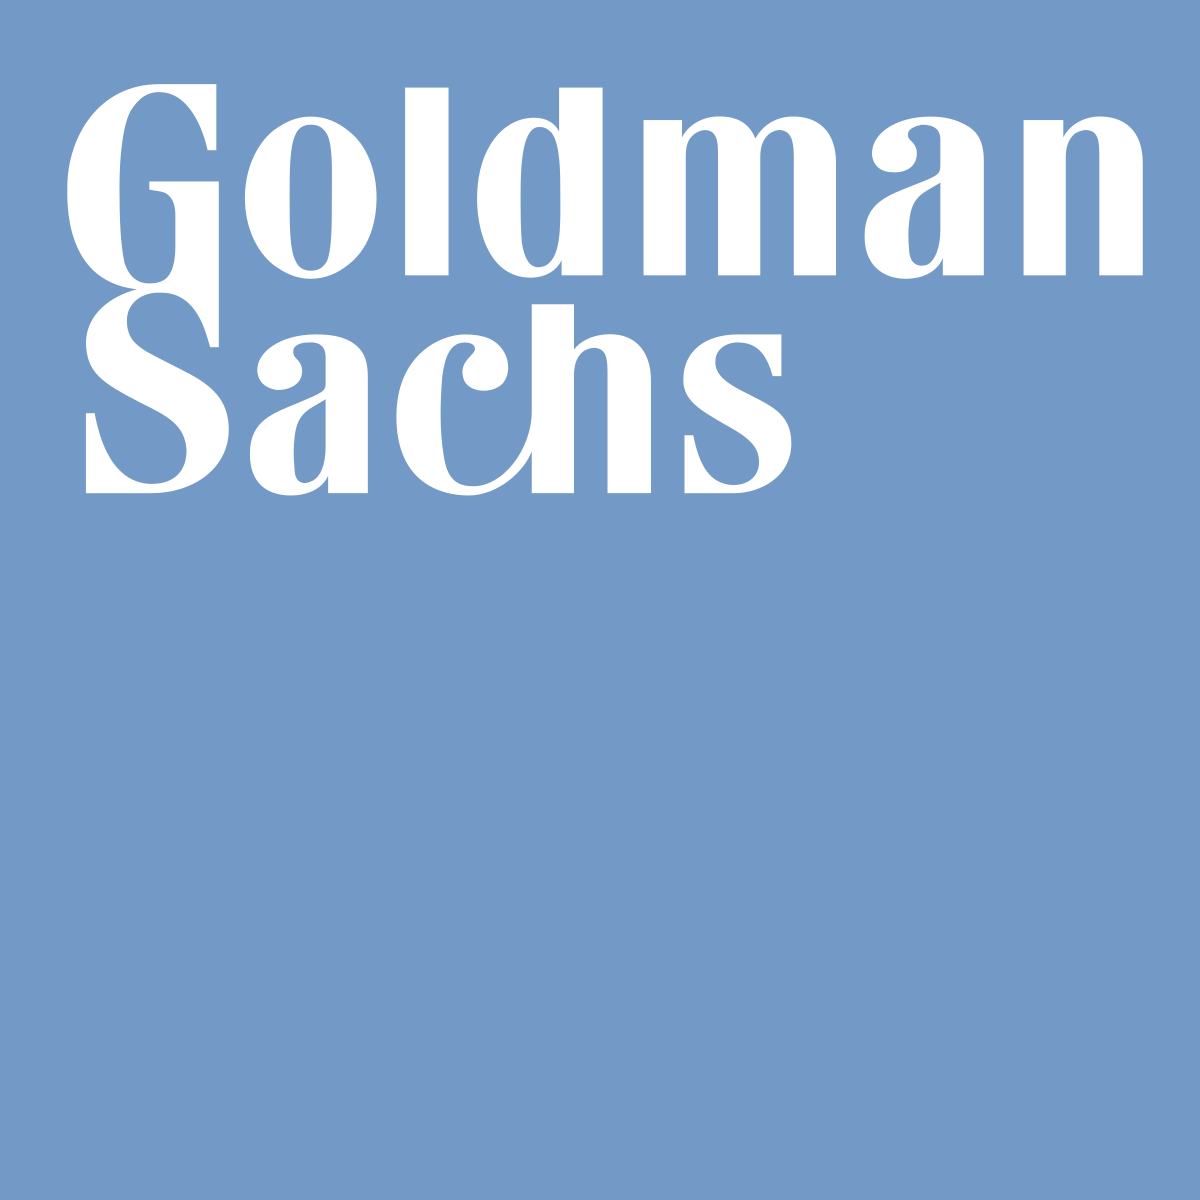 Professional Development Roundtable with Goldman Sachs